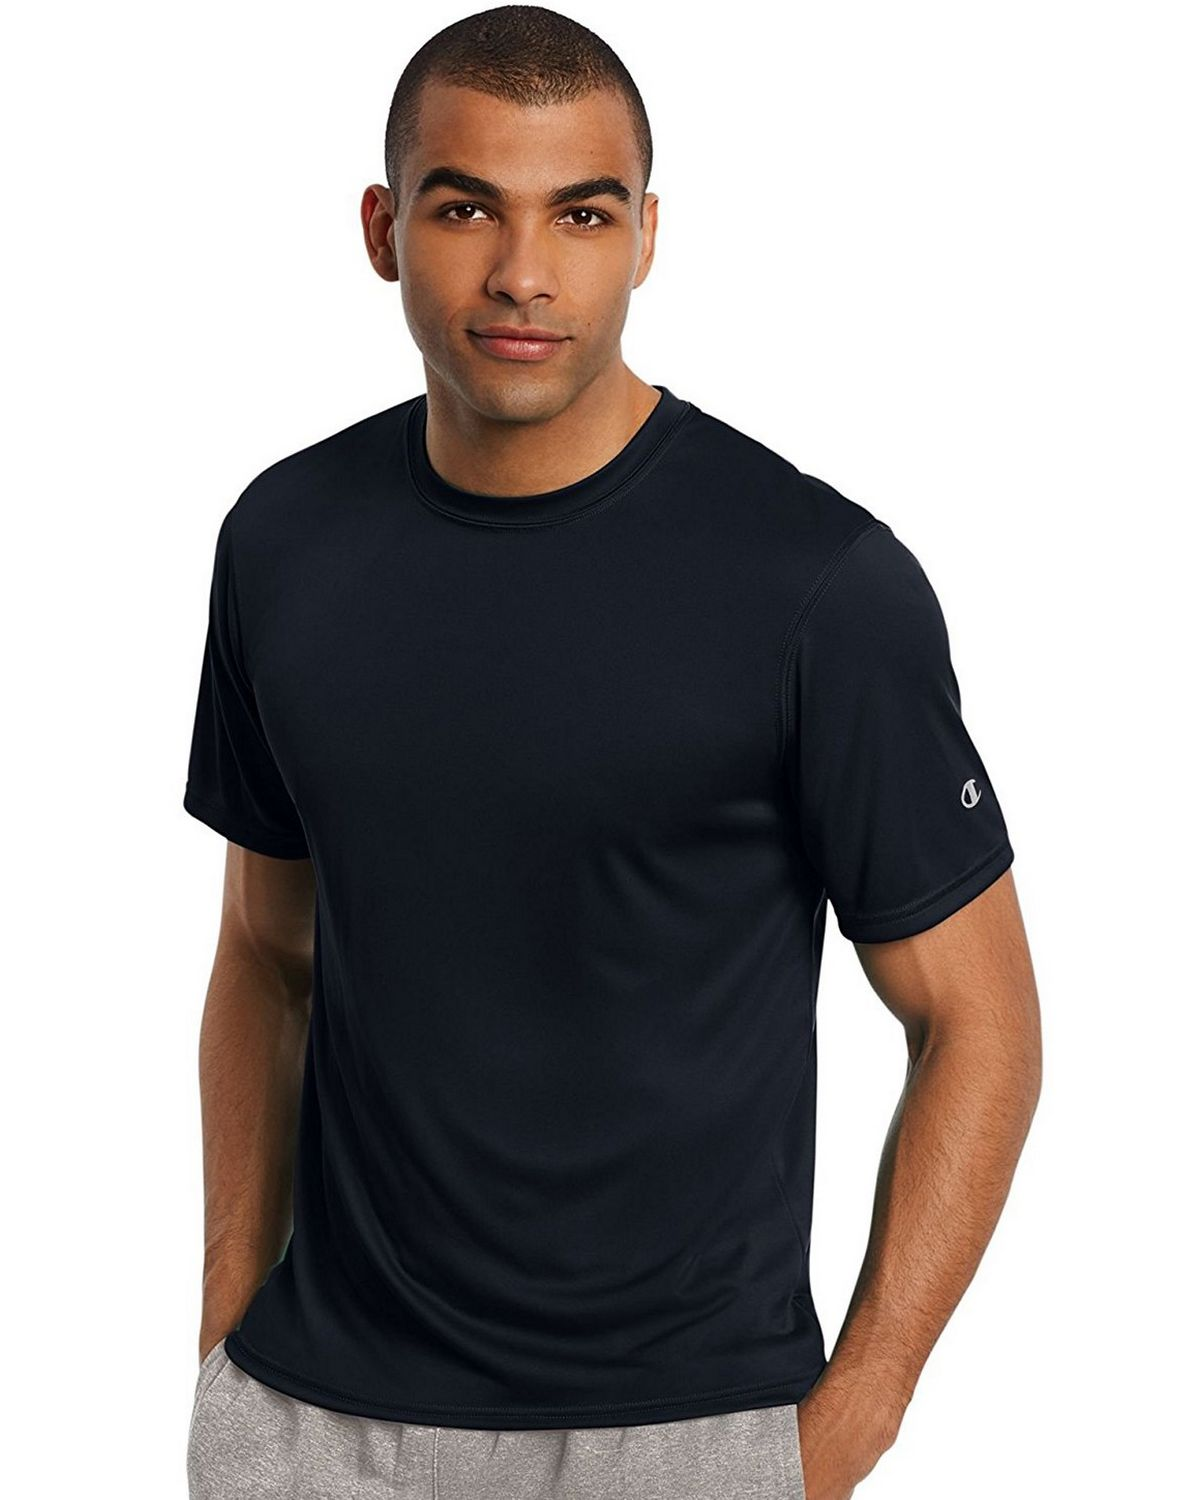 Champion T0022 Core Training Tee - Navy - L T0022